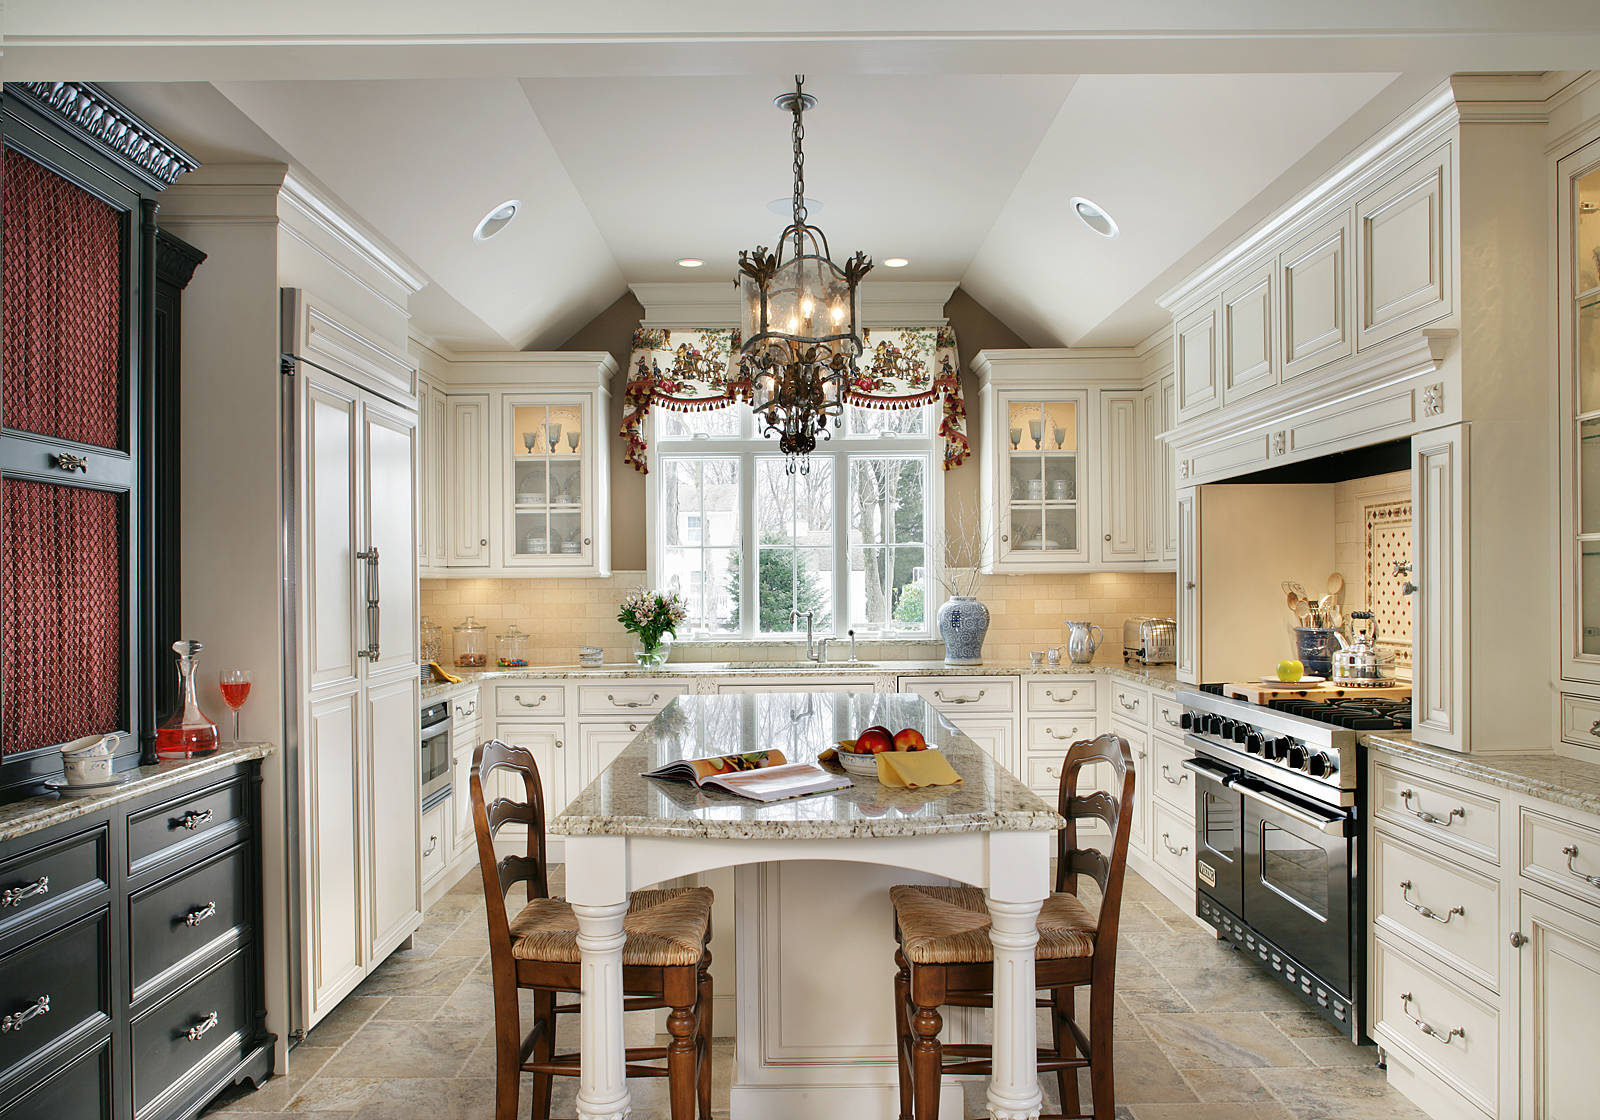 Tray Ceiling Paint Ideas Traditional Kitchen Glass Door Cabinets U Shaped Kitchen Island